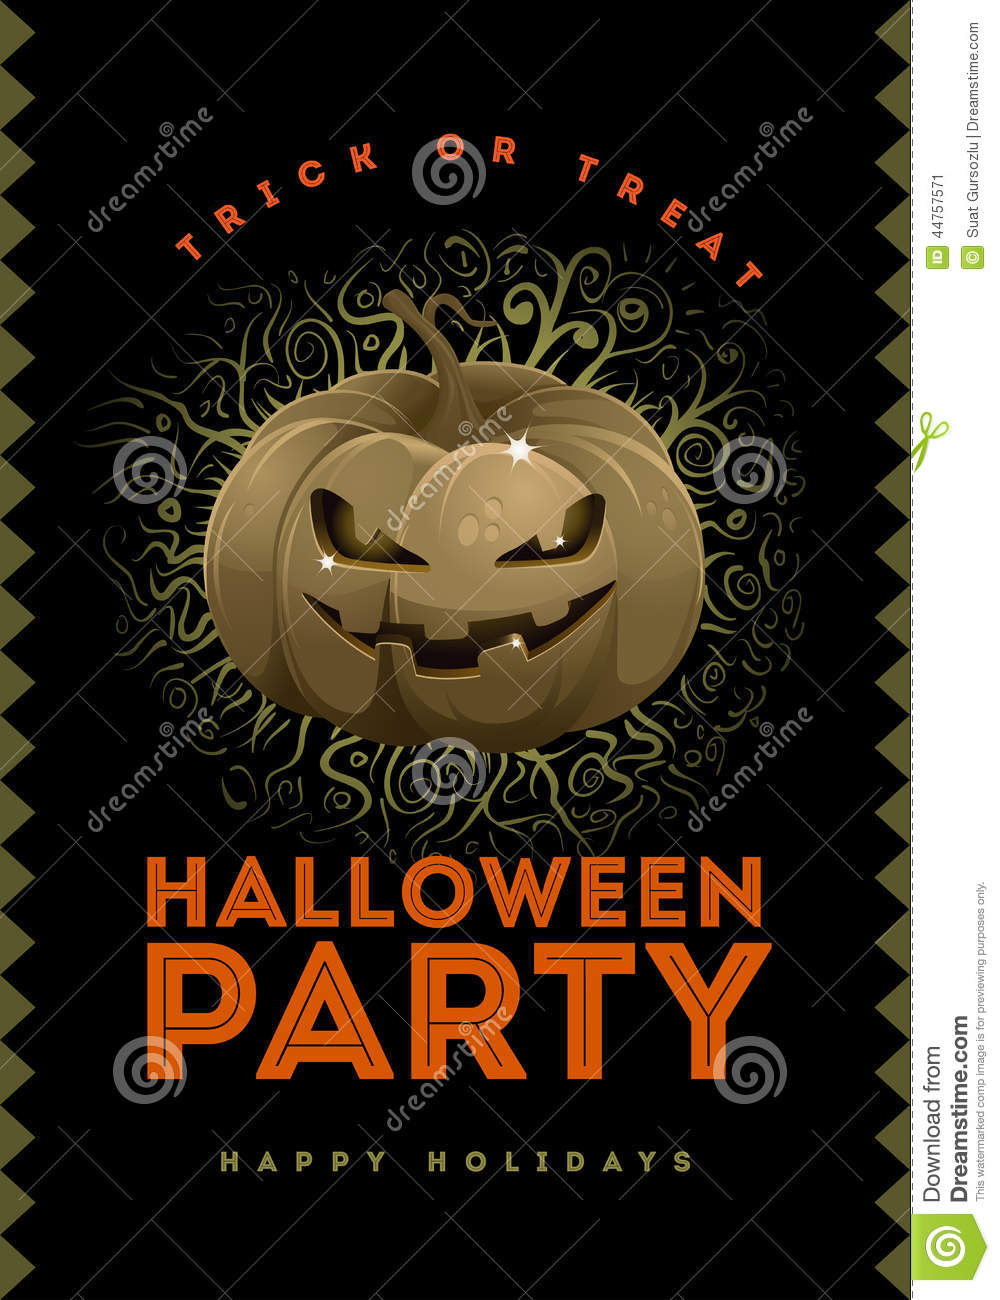 Halloween Party Poster Stock Vector - Image: 44757571